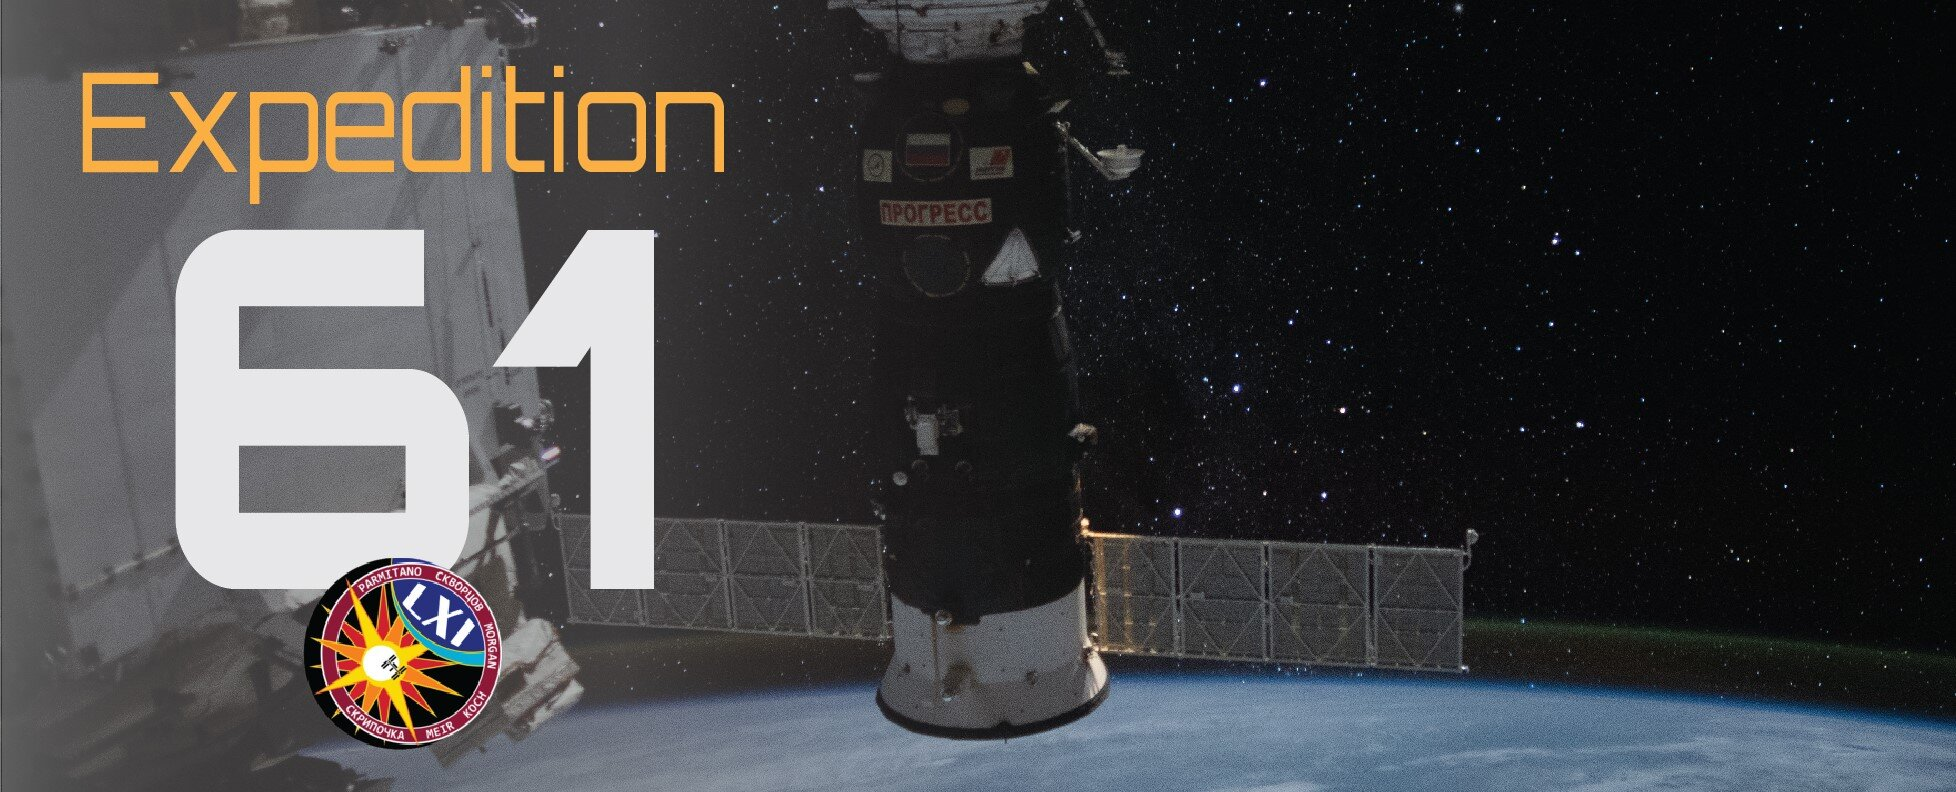 Expedition61Banner.jpg